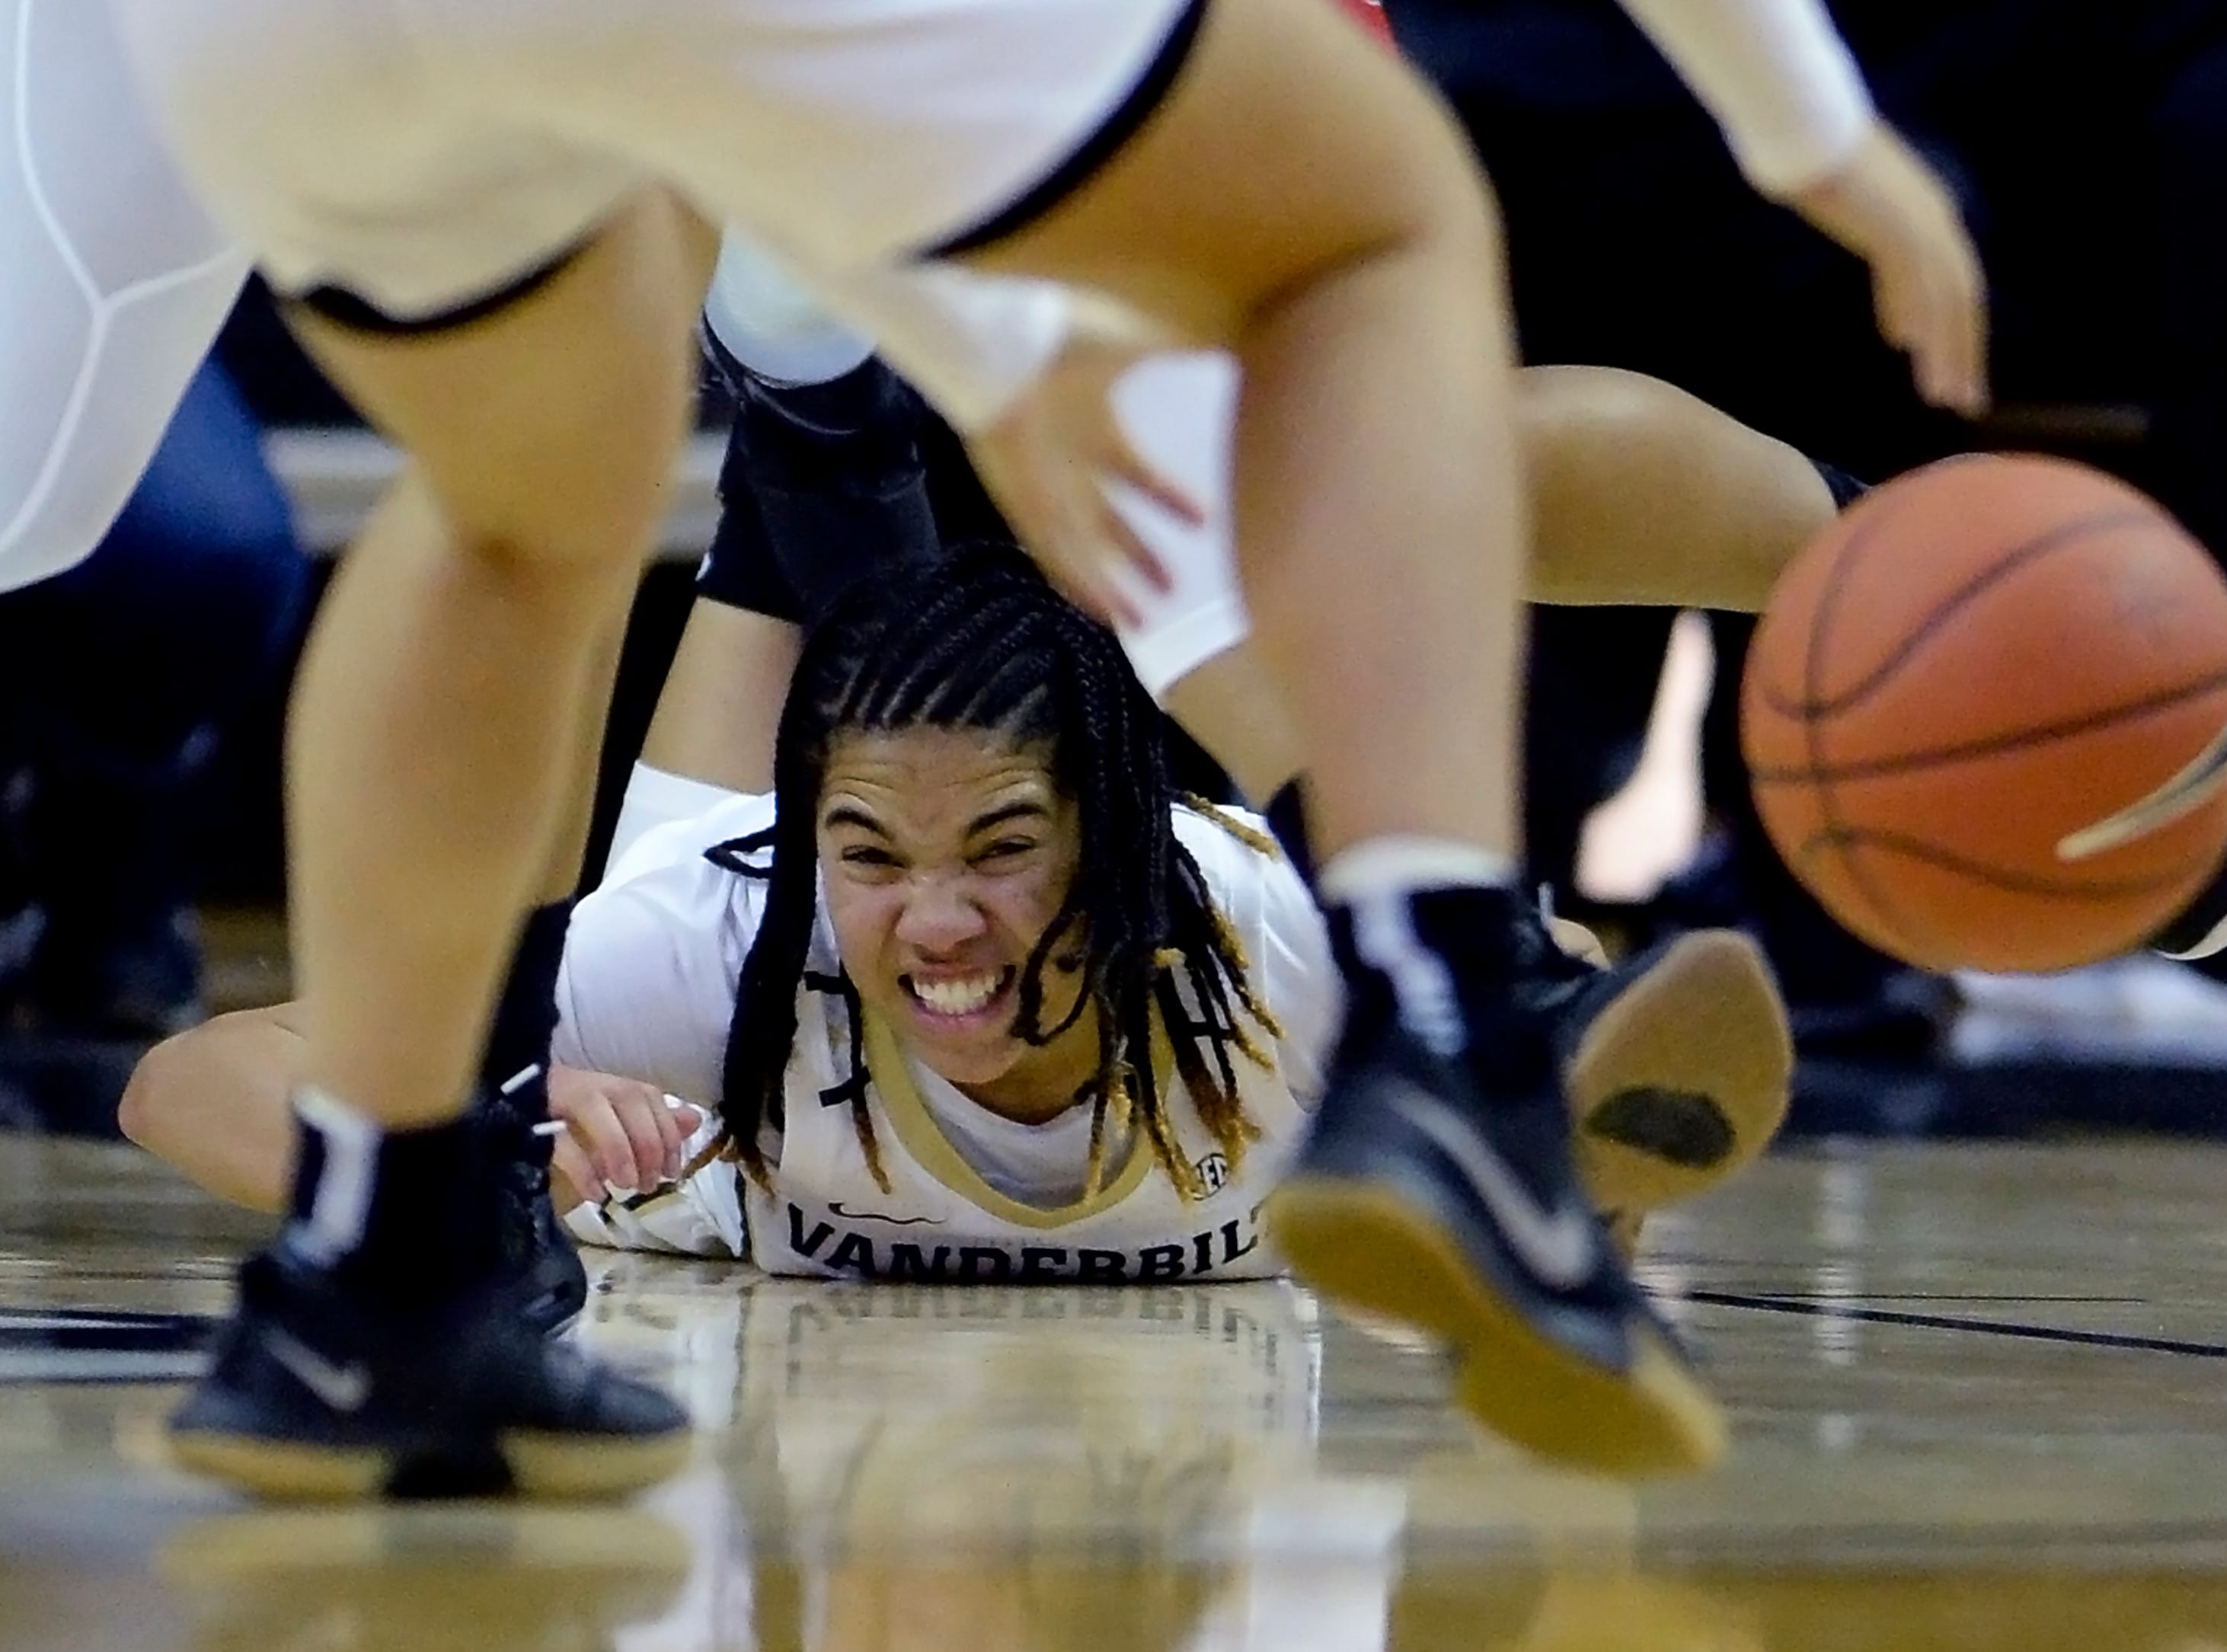 Vanderbilt guard Chelsie Hall (2) falls to the floor after passing the ball to guard Kaleigh Clemons-Green against Austin Peay during the second half of an NCAA college basketball game Monday, Nov. 12, 2018, in Nashville, Tenn. Vanderbilt won 99-70.